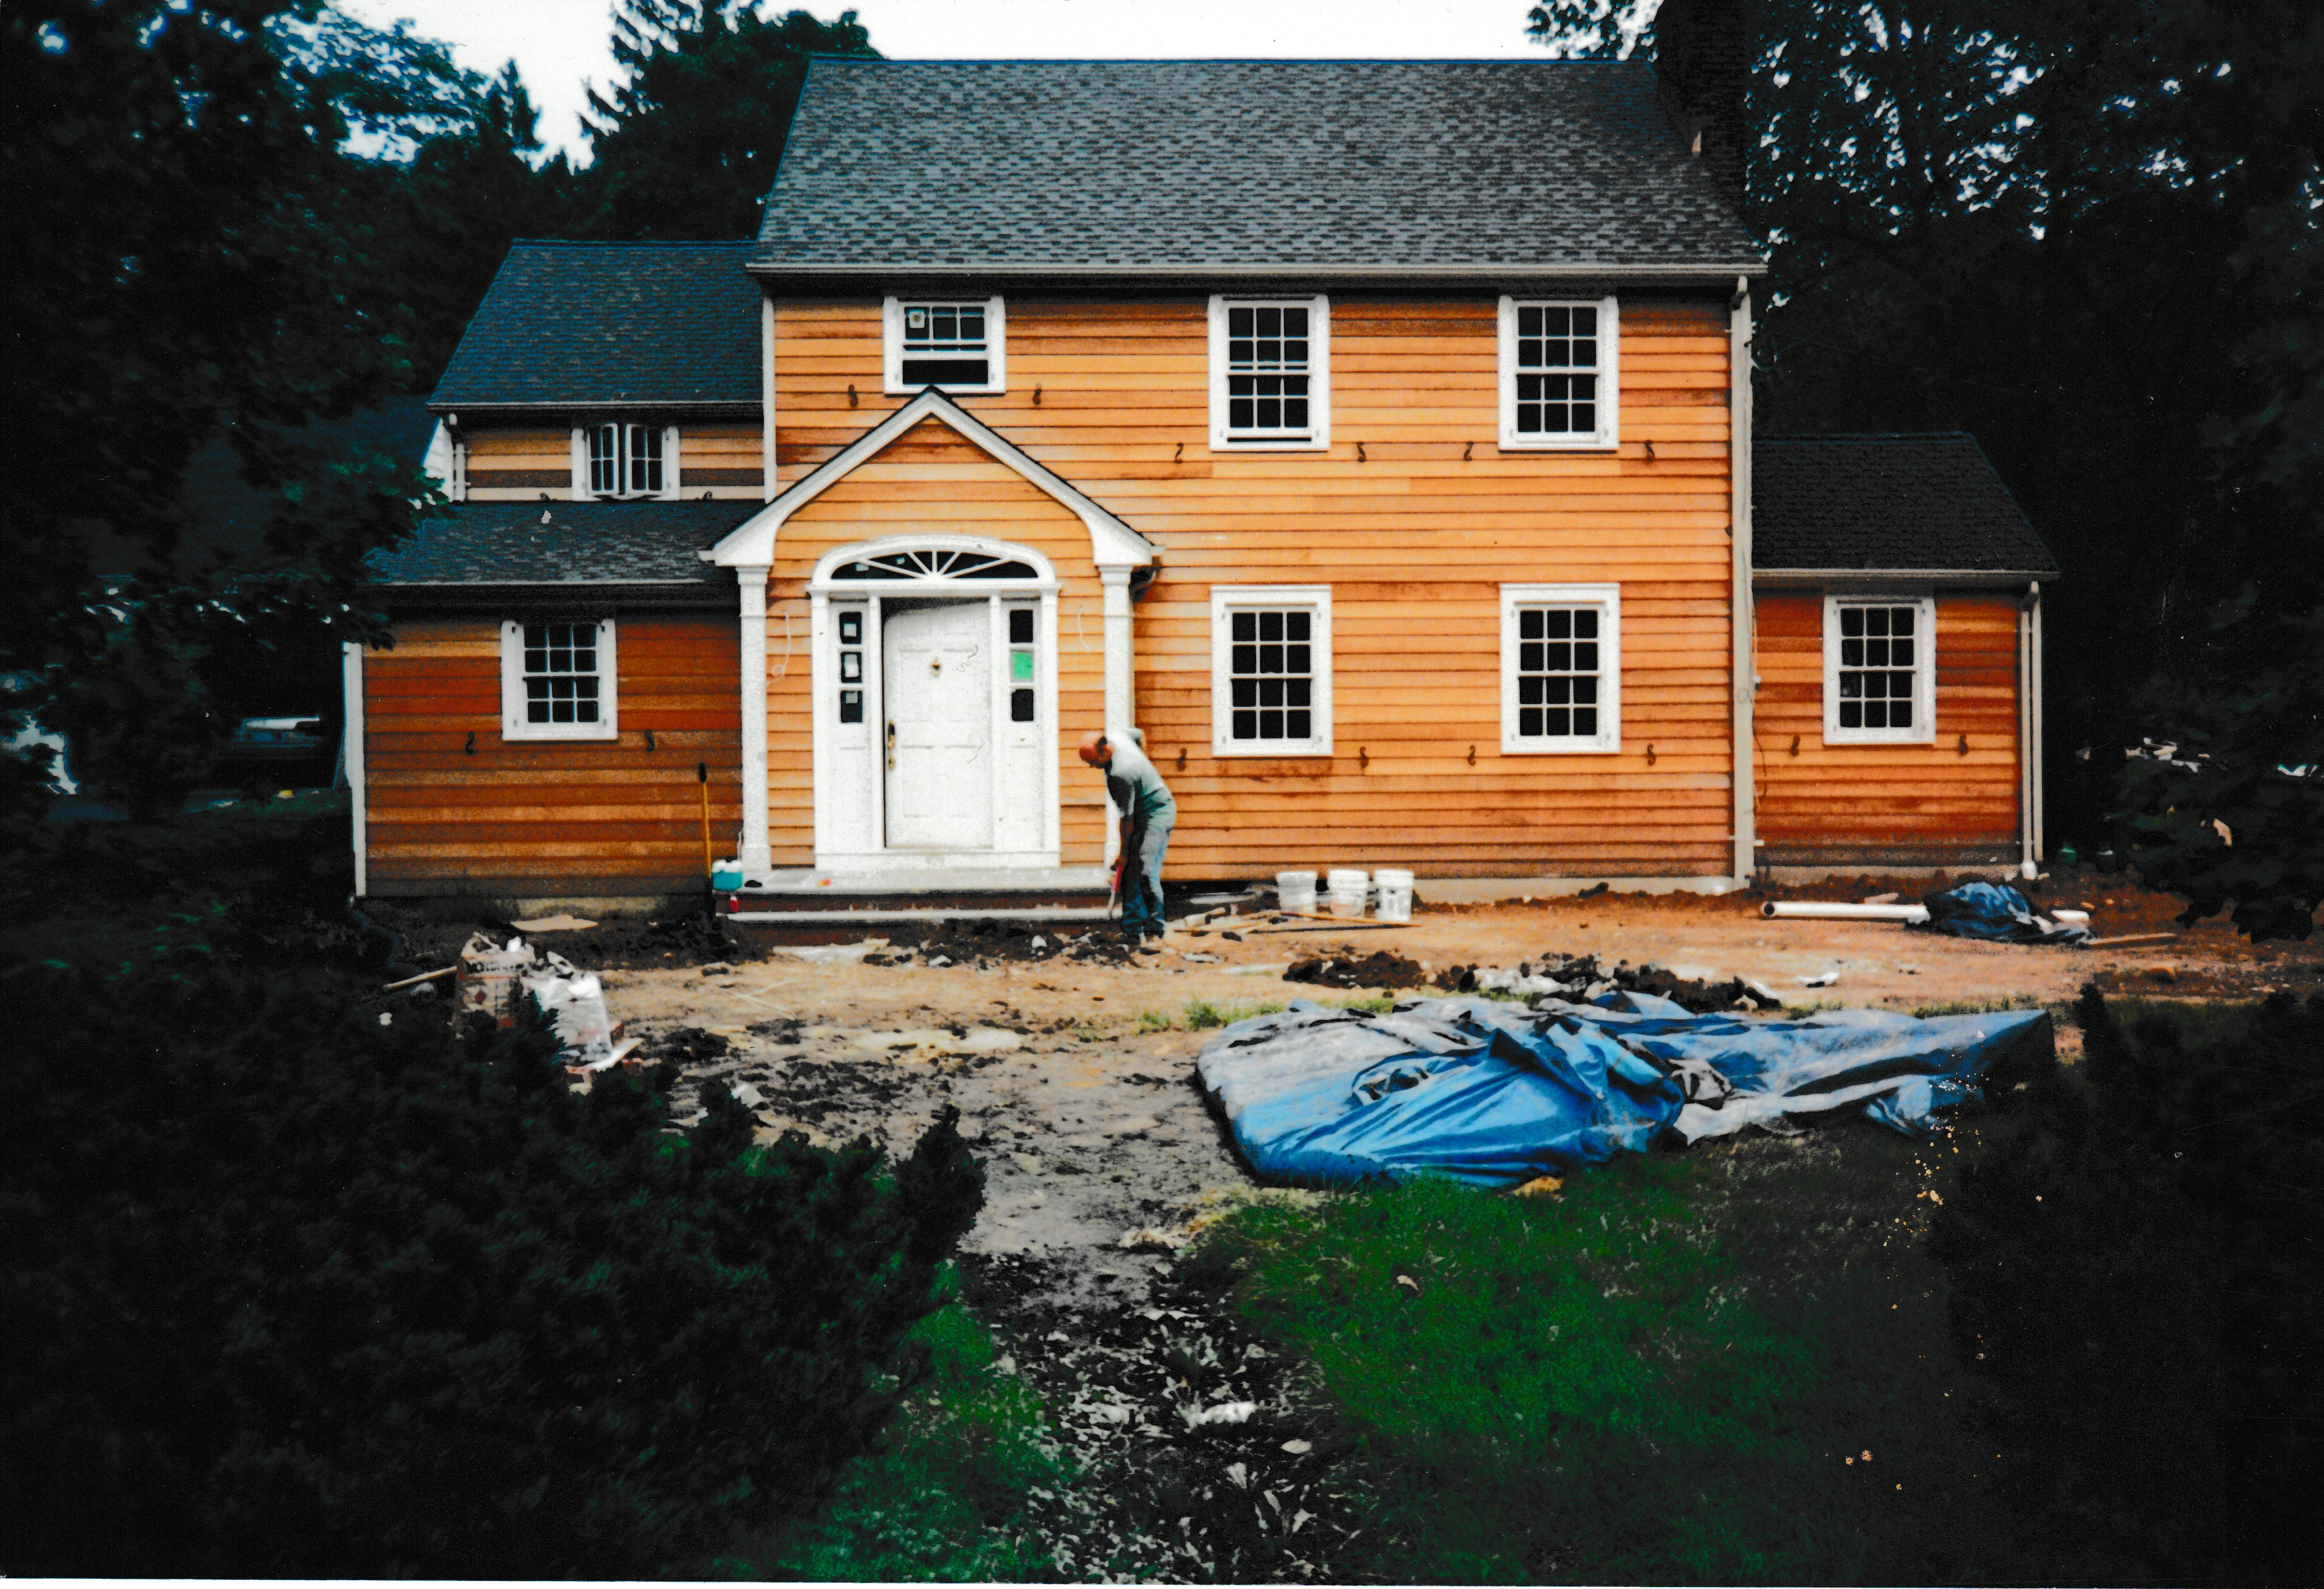 House under construction, worker digging up ground